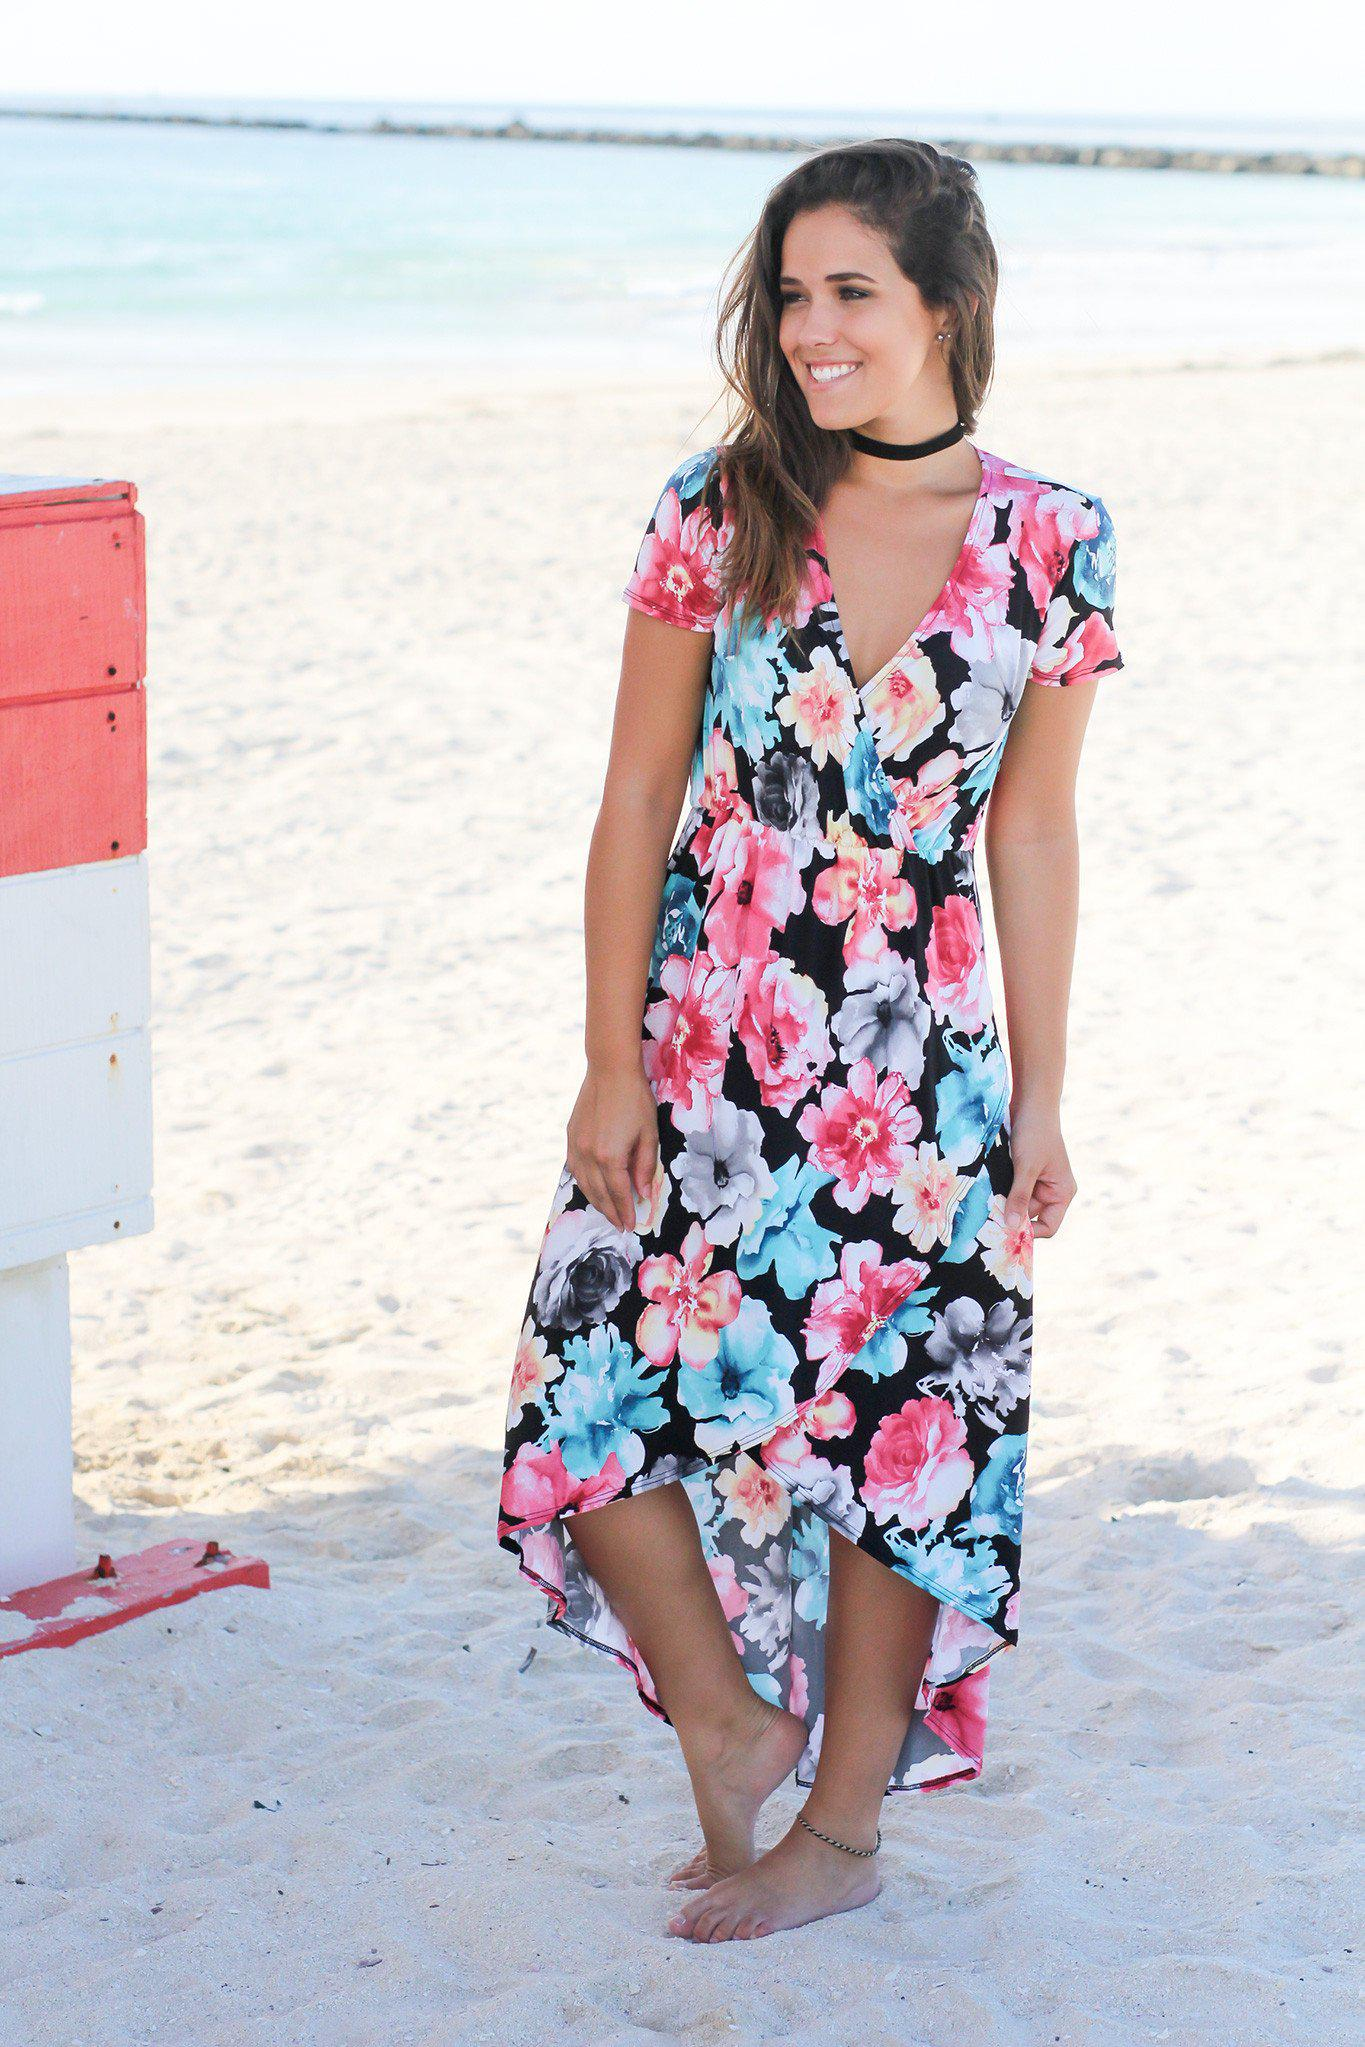 Black Floral High Low Dress with Short Sleeves | Online Boutiques ...